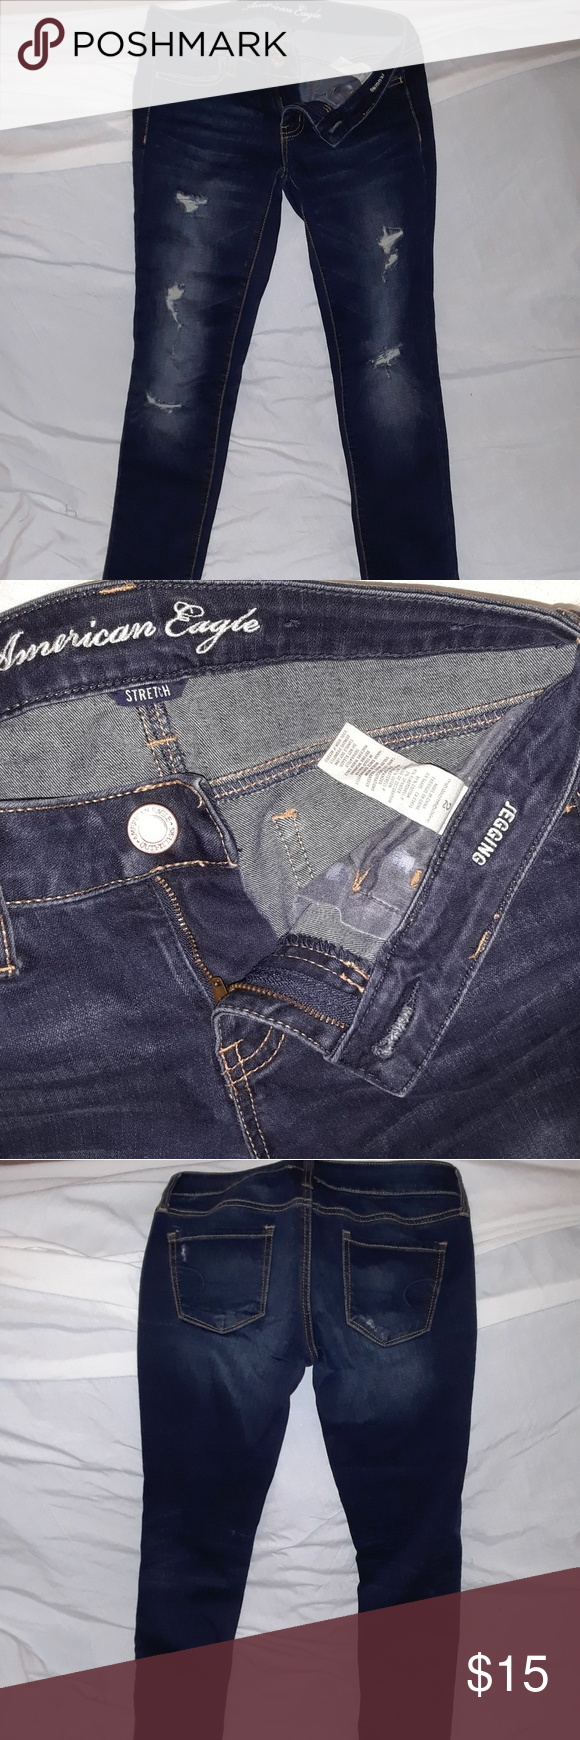 American Eagle jeggings Hardly worn American Eagle jeggings.  Dark denim. American Eagle Outfitters Jeans Skinny